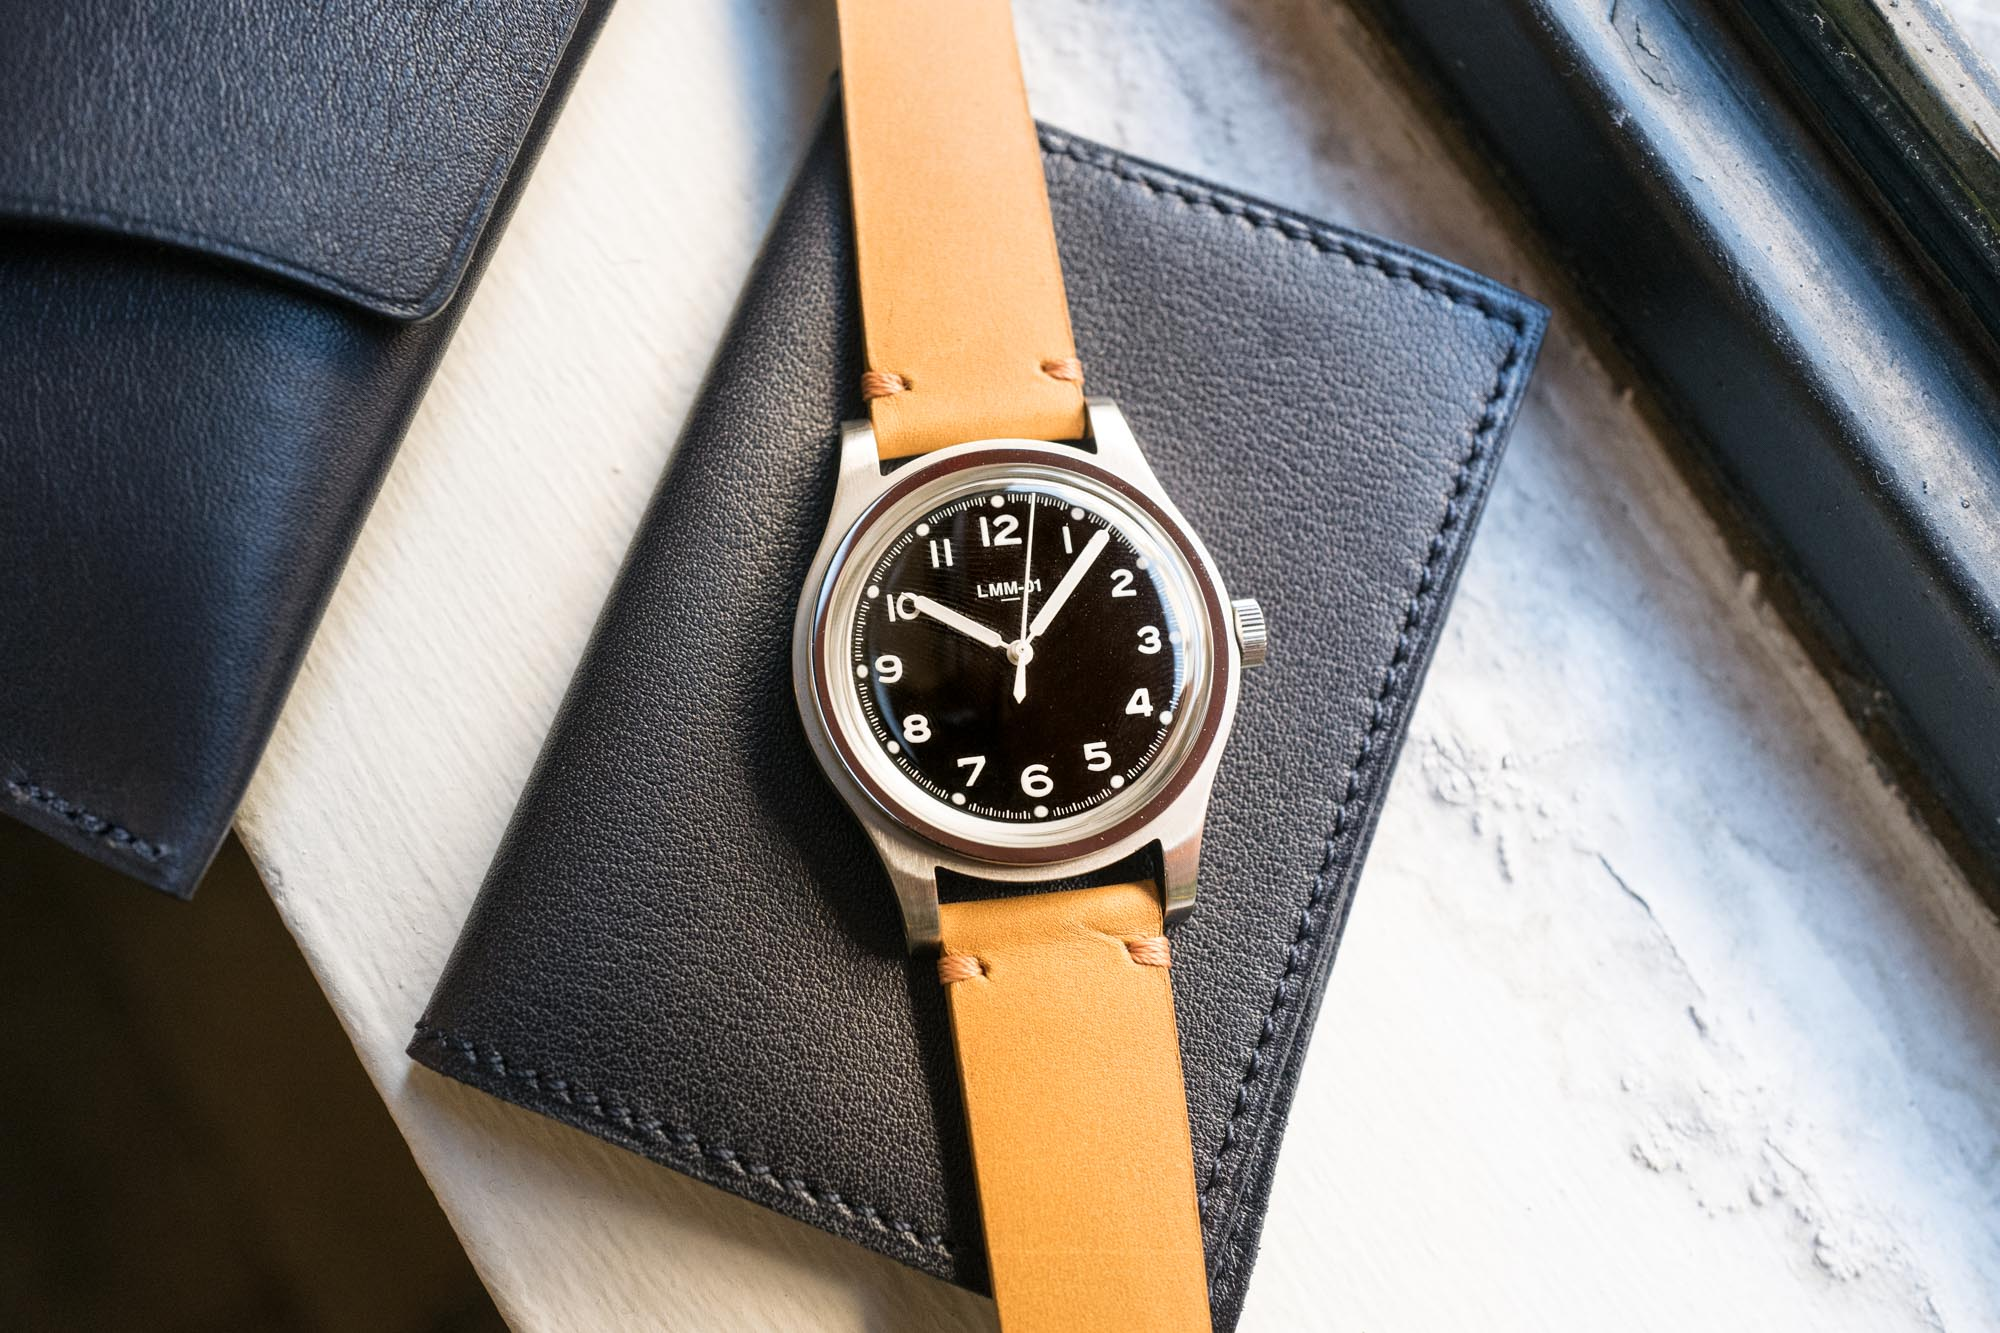 La Montre Merci LMM-01 - Field Watch Noire